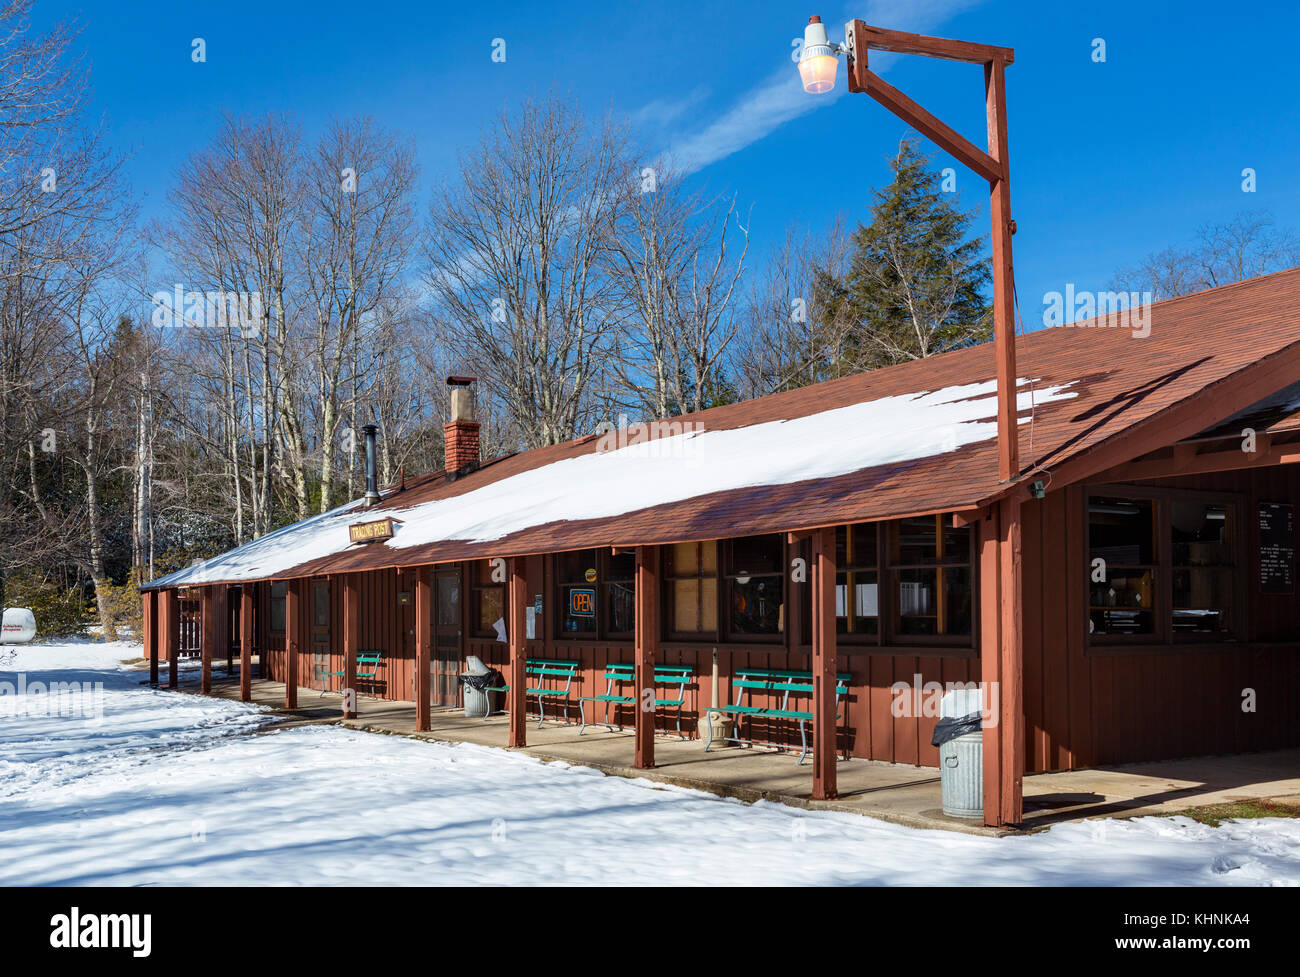 Trading post at Blackwater Falls State Park, Allegheny Mountains, West Virginia, USA - Stock Image